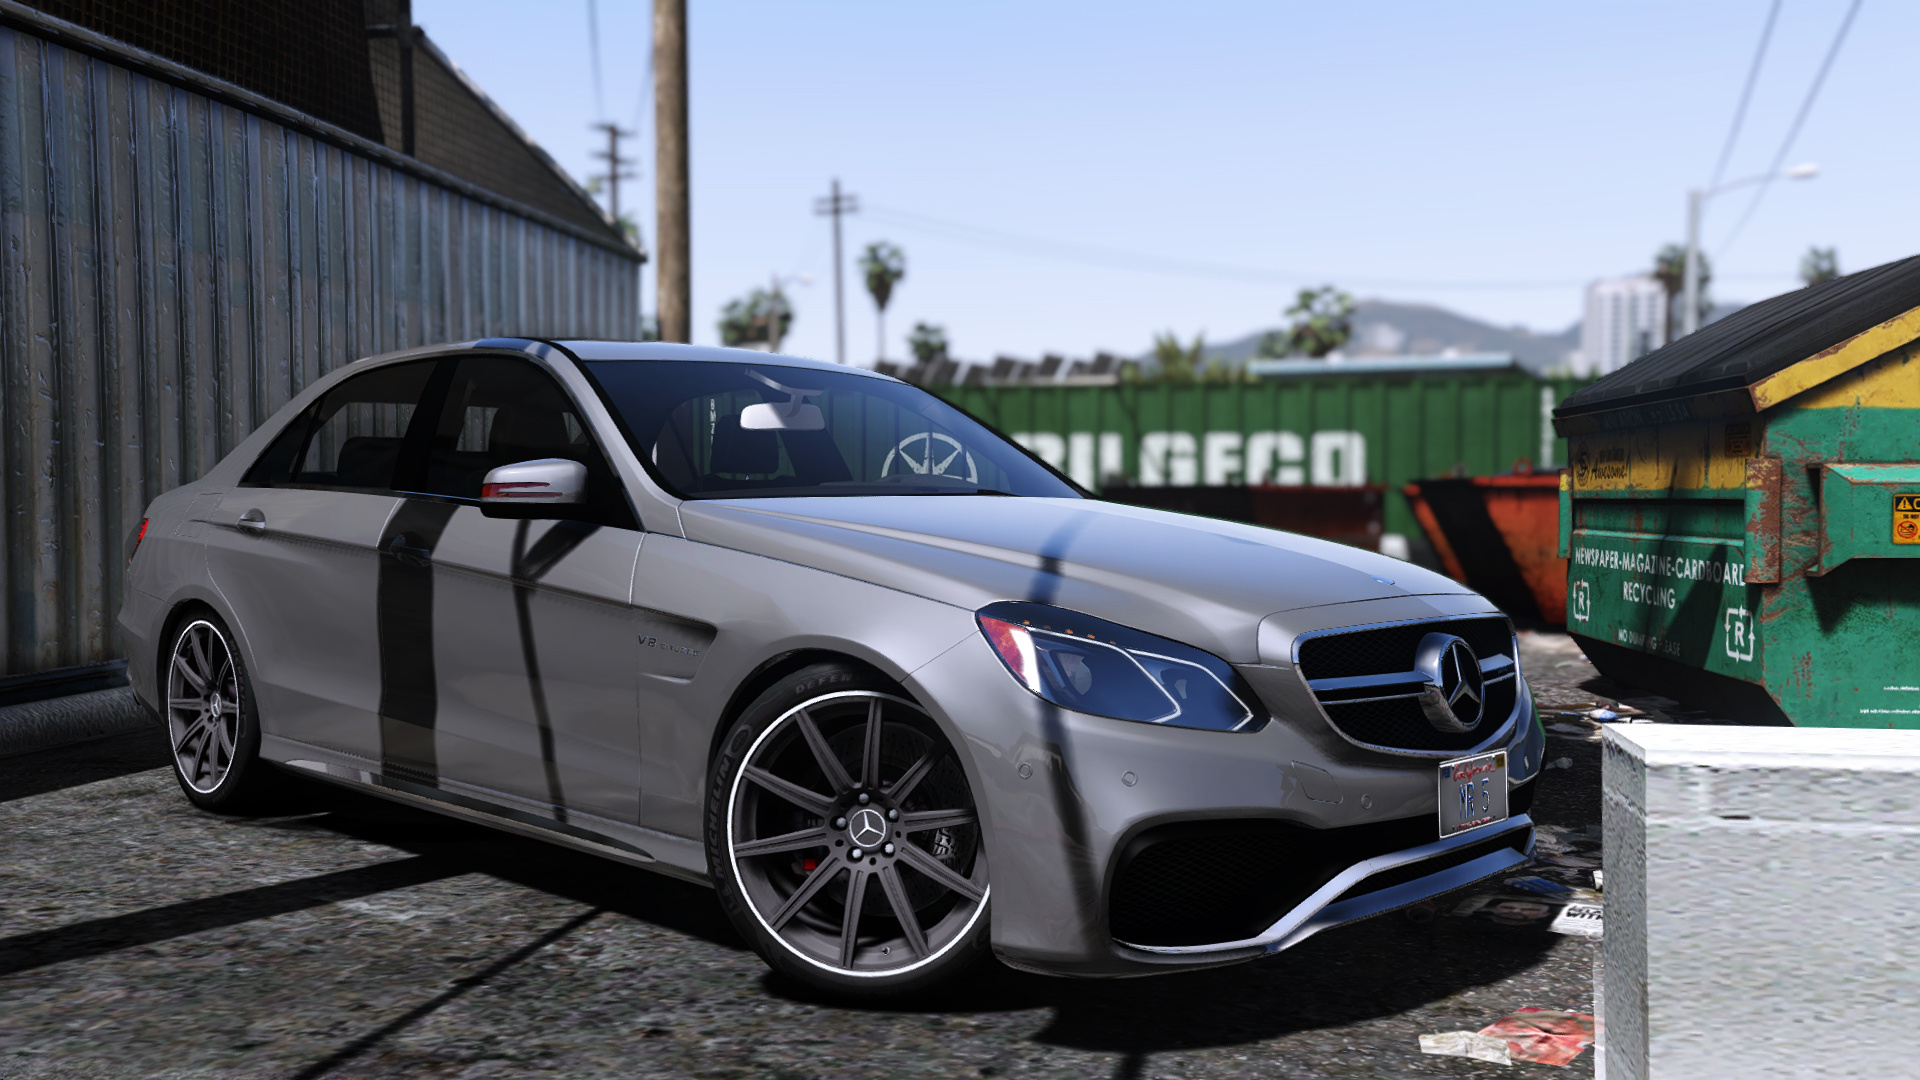 Mercedes Benz E63 Amg Toto907 on gallivanter baller